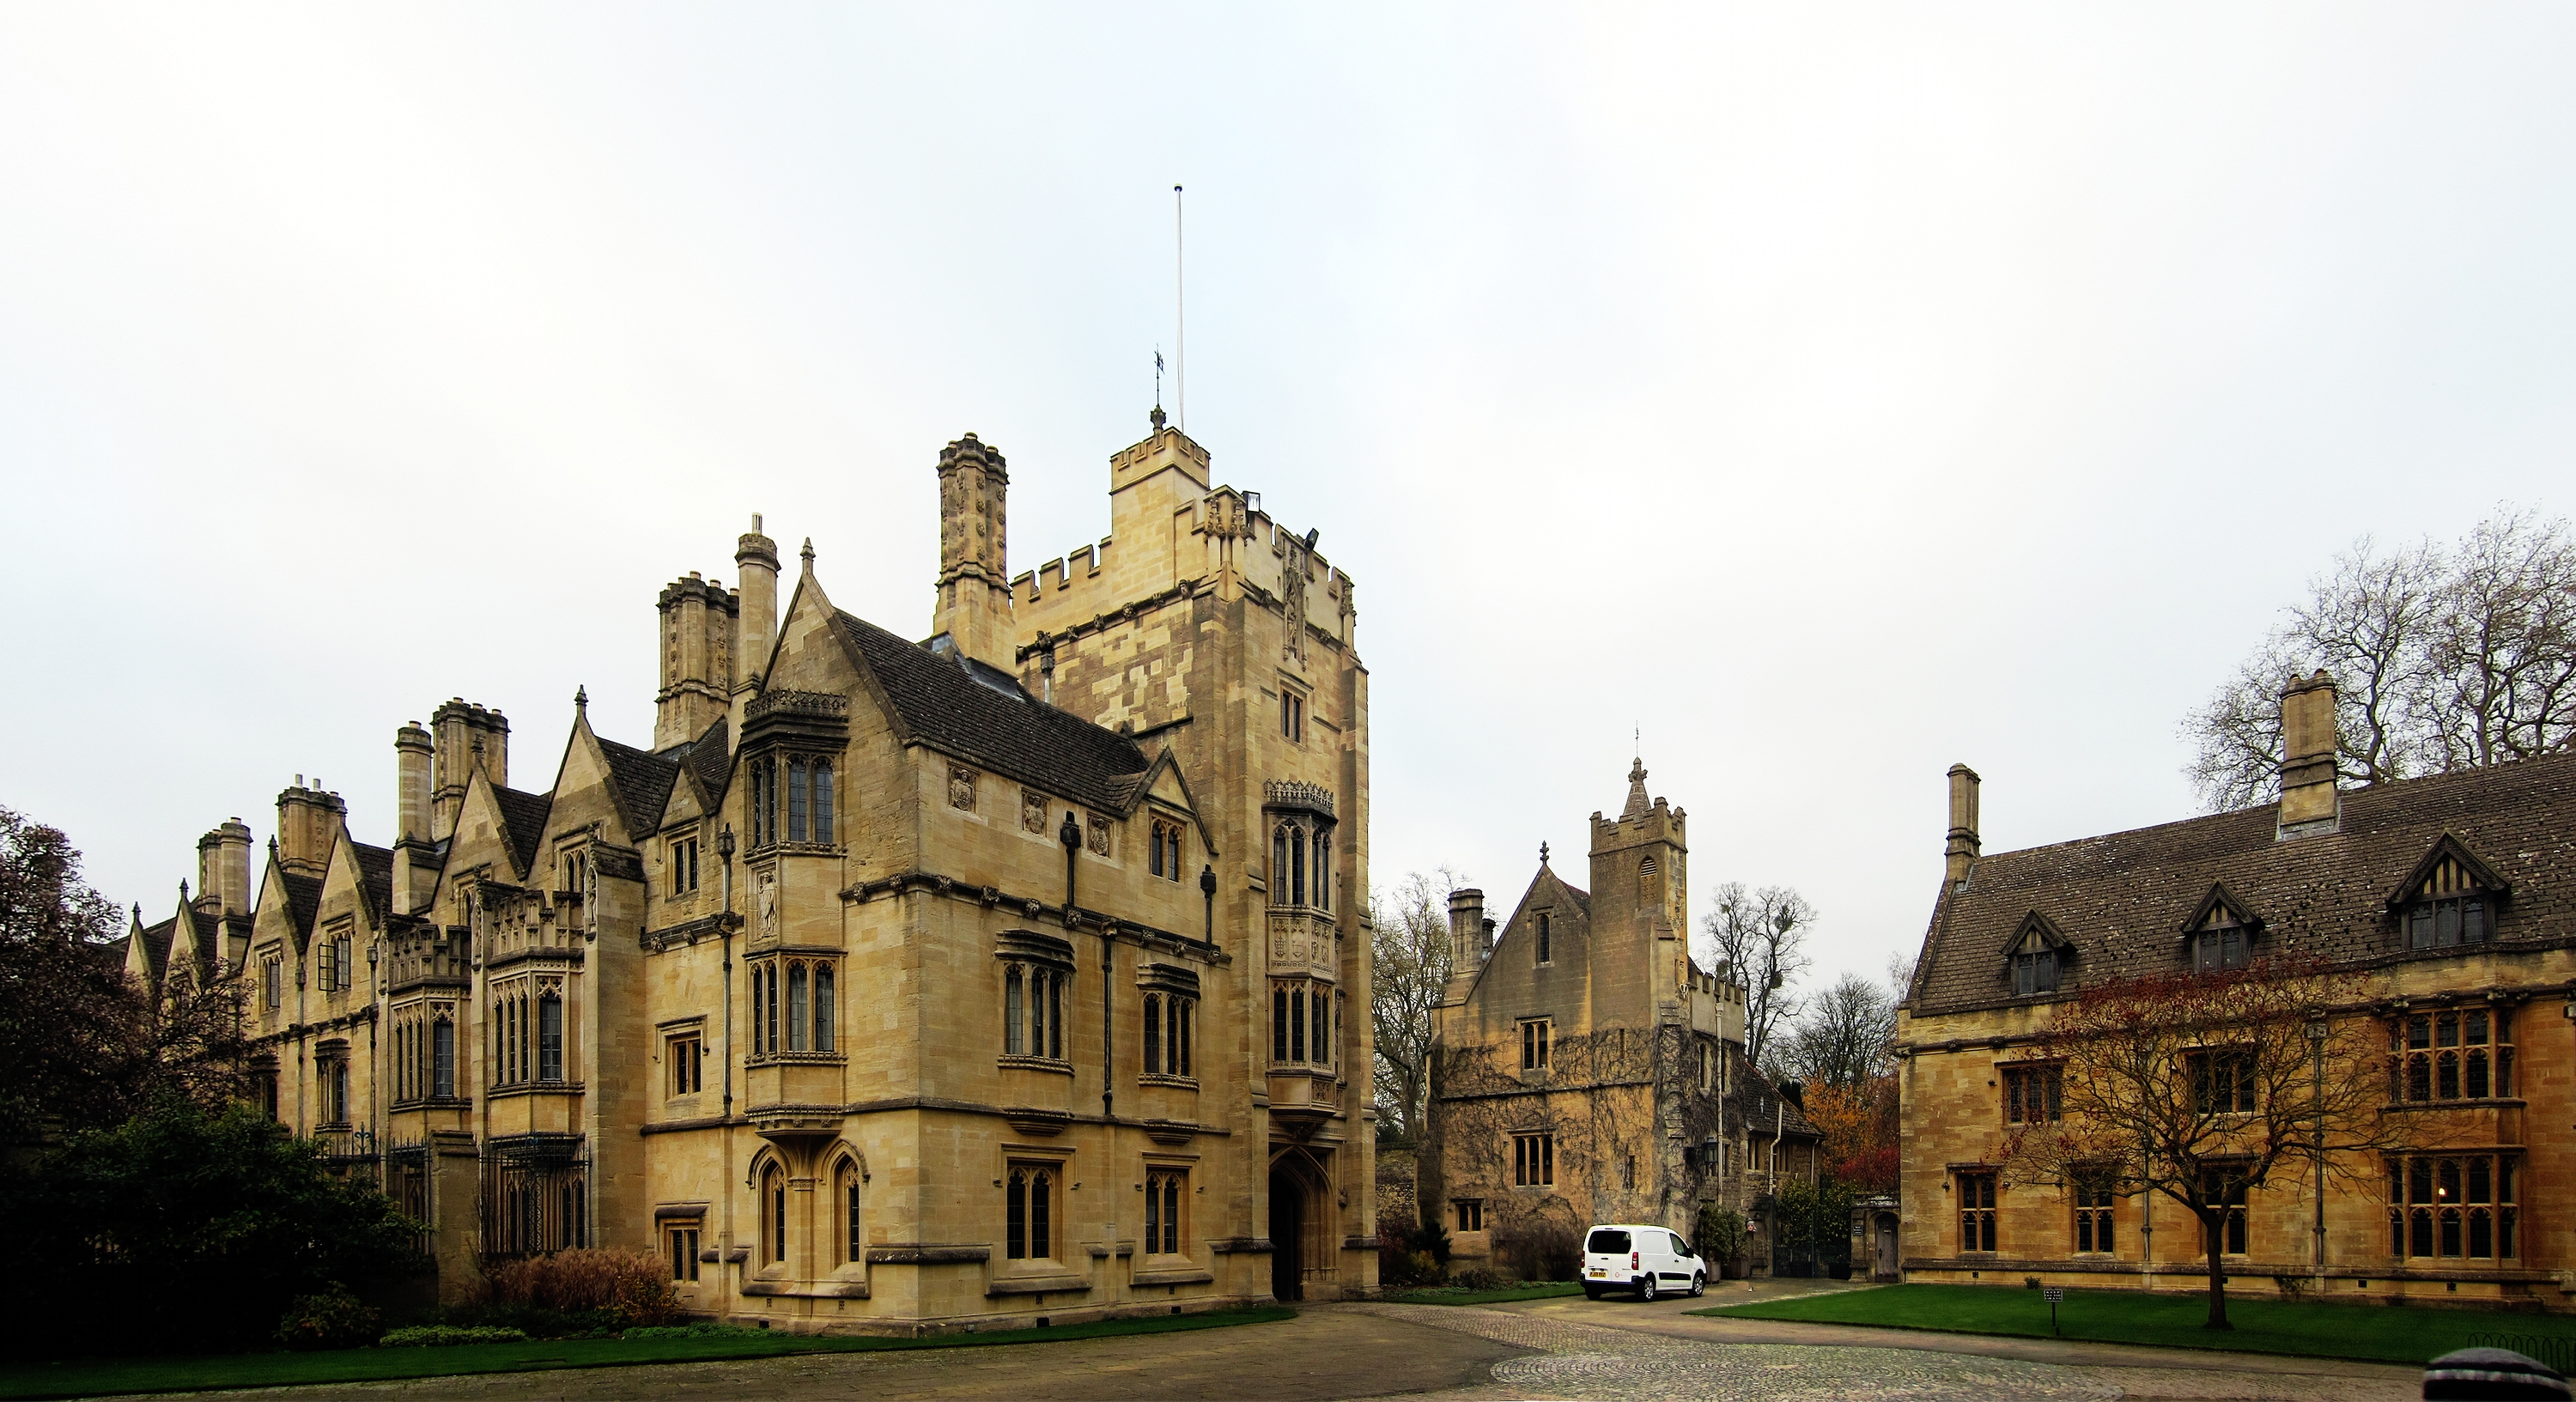 File:Oxford magdalen college cour.jpg - Wikimedia Commons